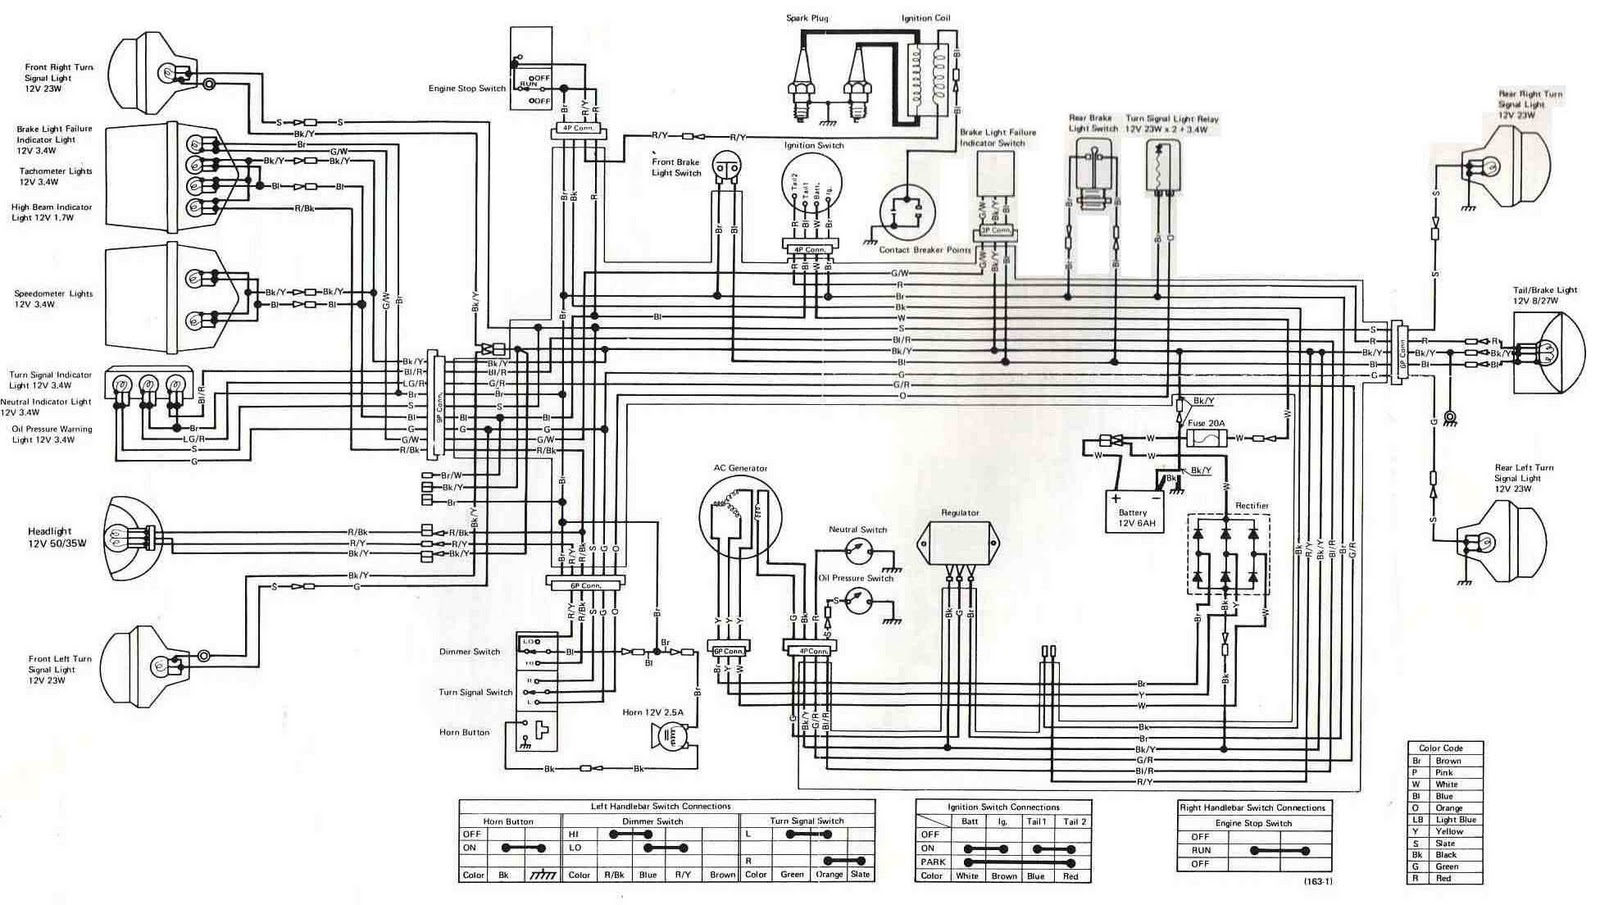 kawasaki brute force 750 wiring diagram 2001 impala kz400 1975 electrical | all about diagrams